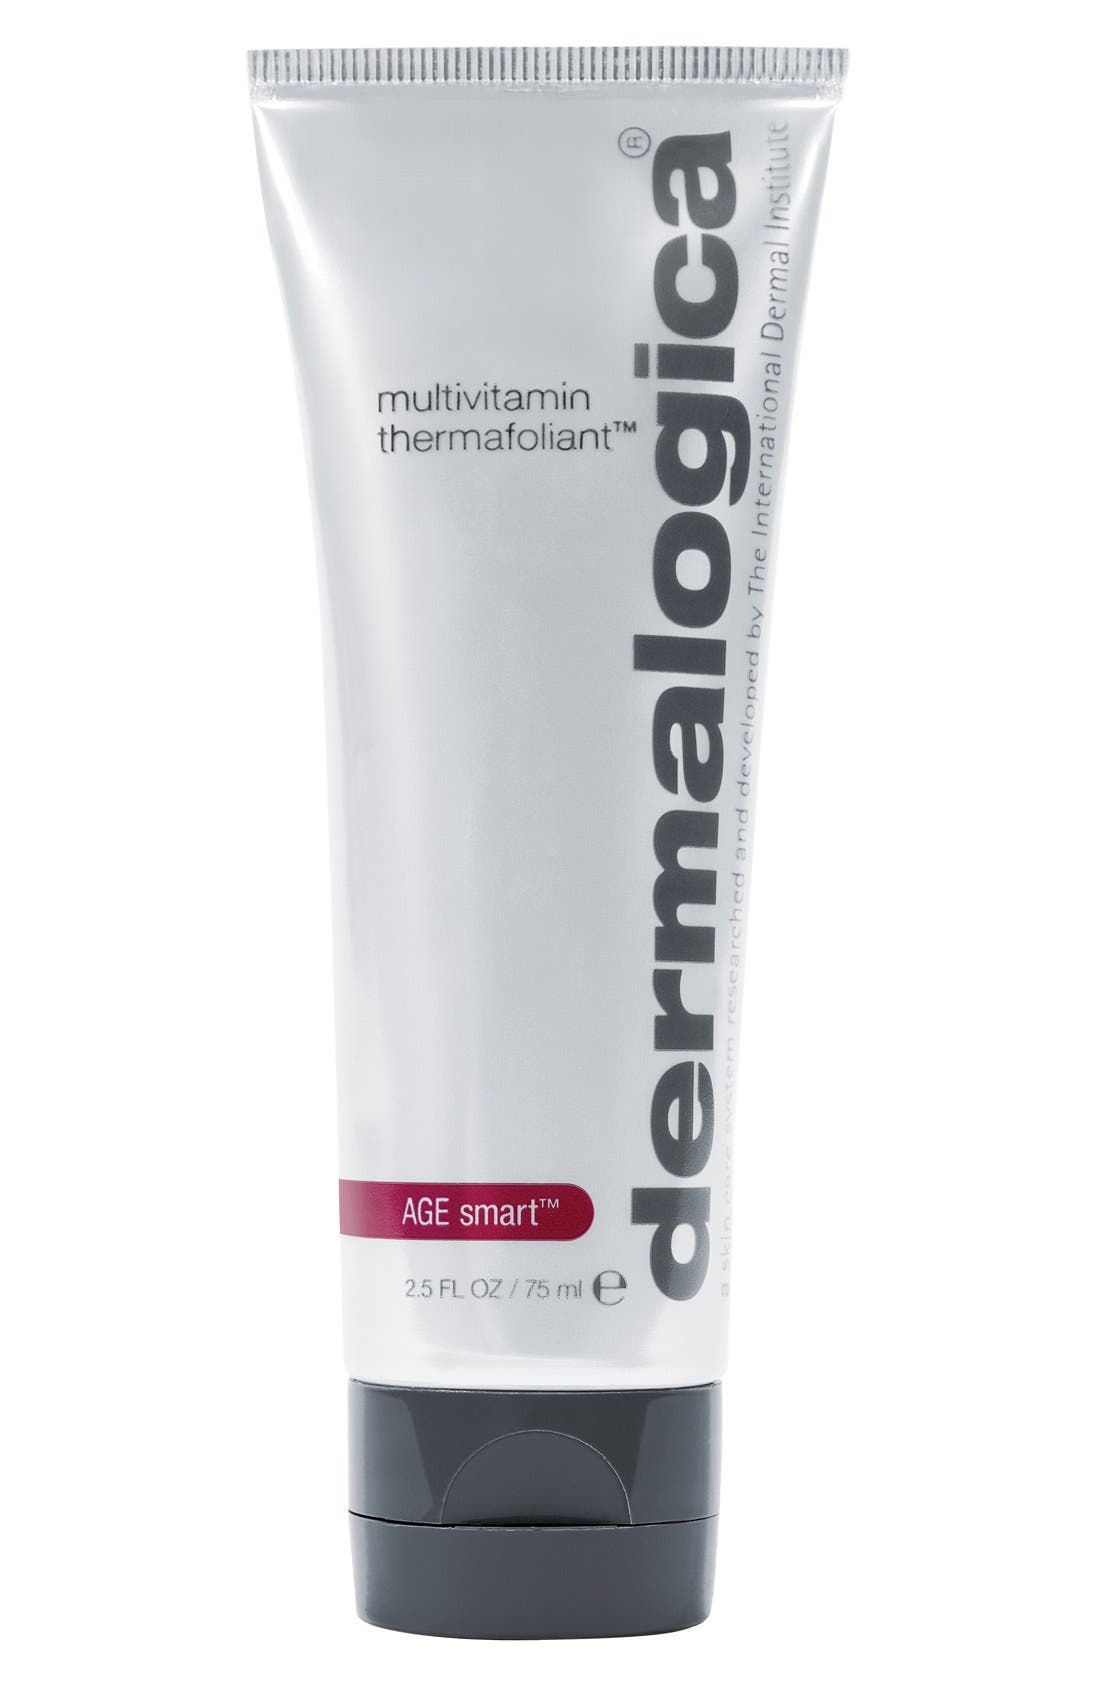 dermalogica® Multivitamin Thermafoliant™